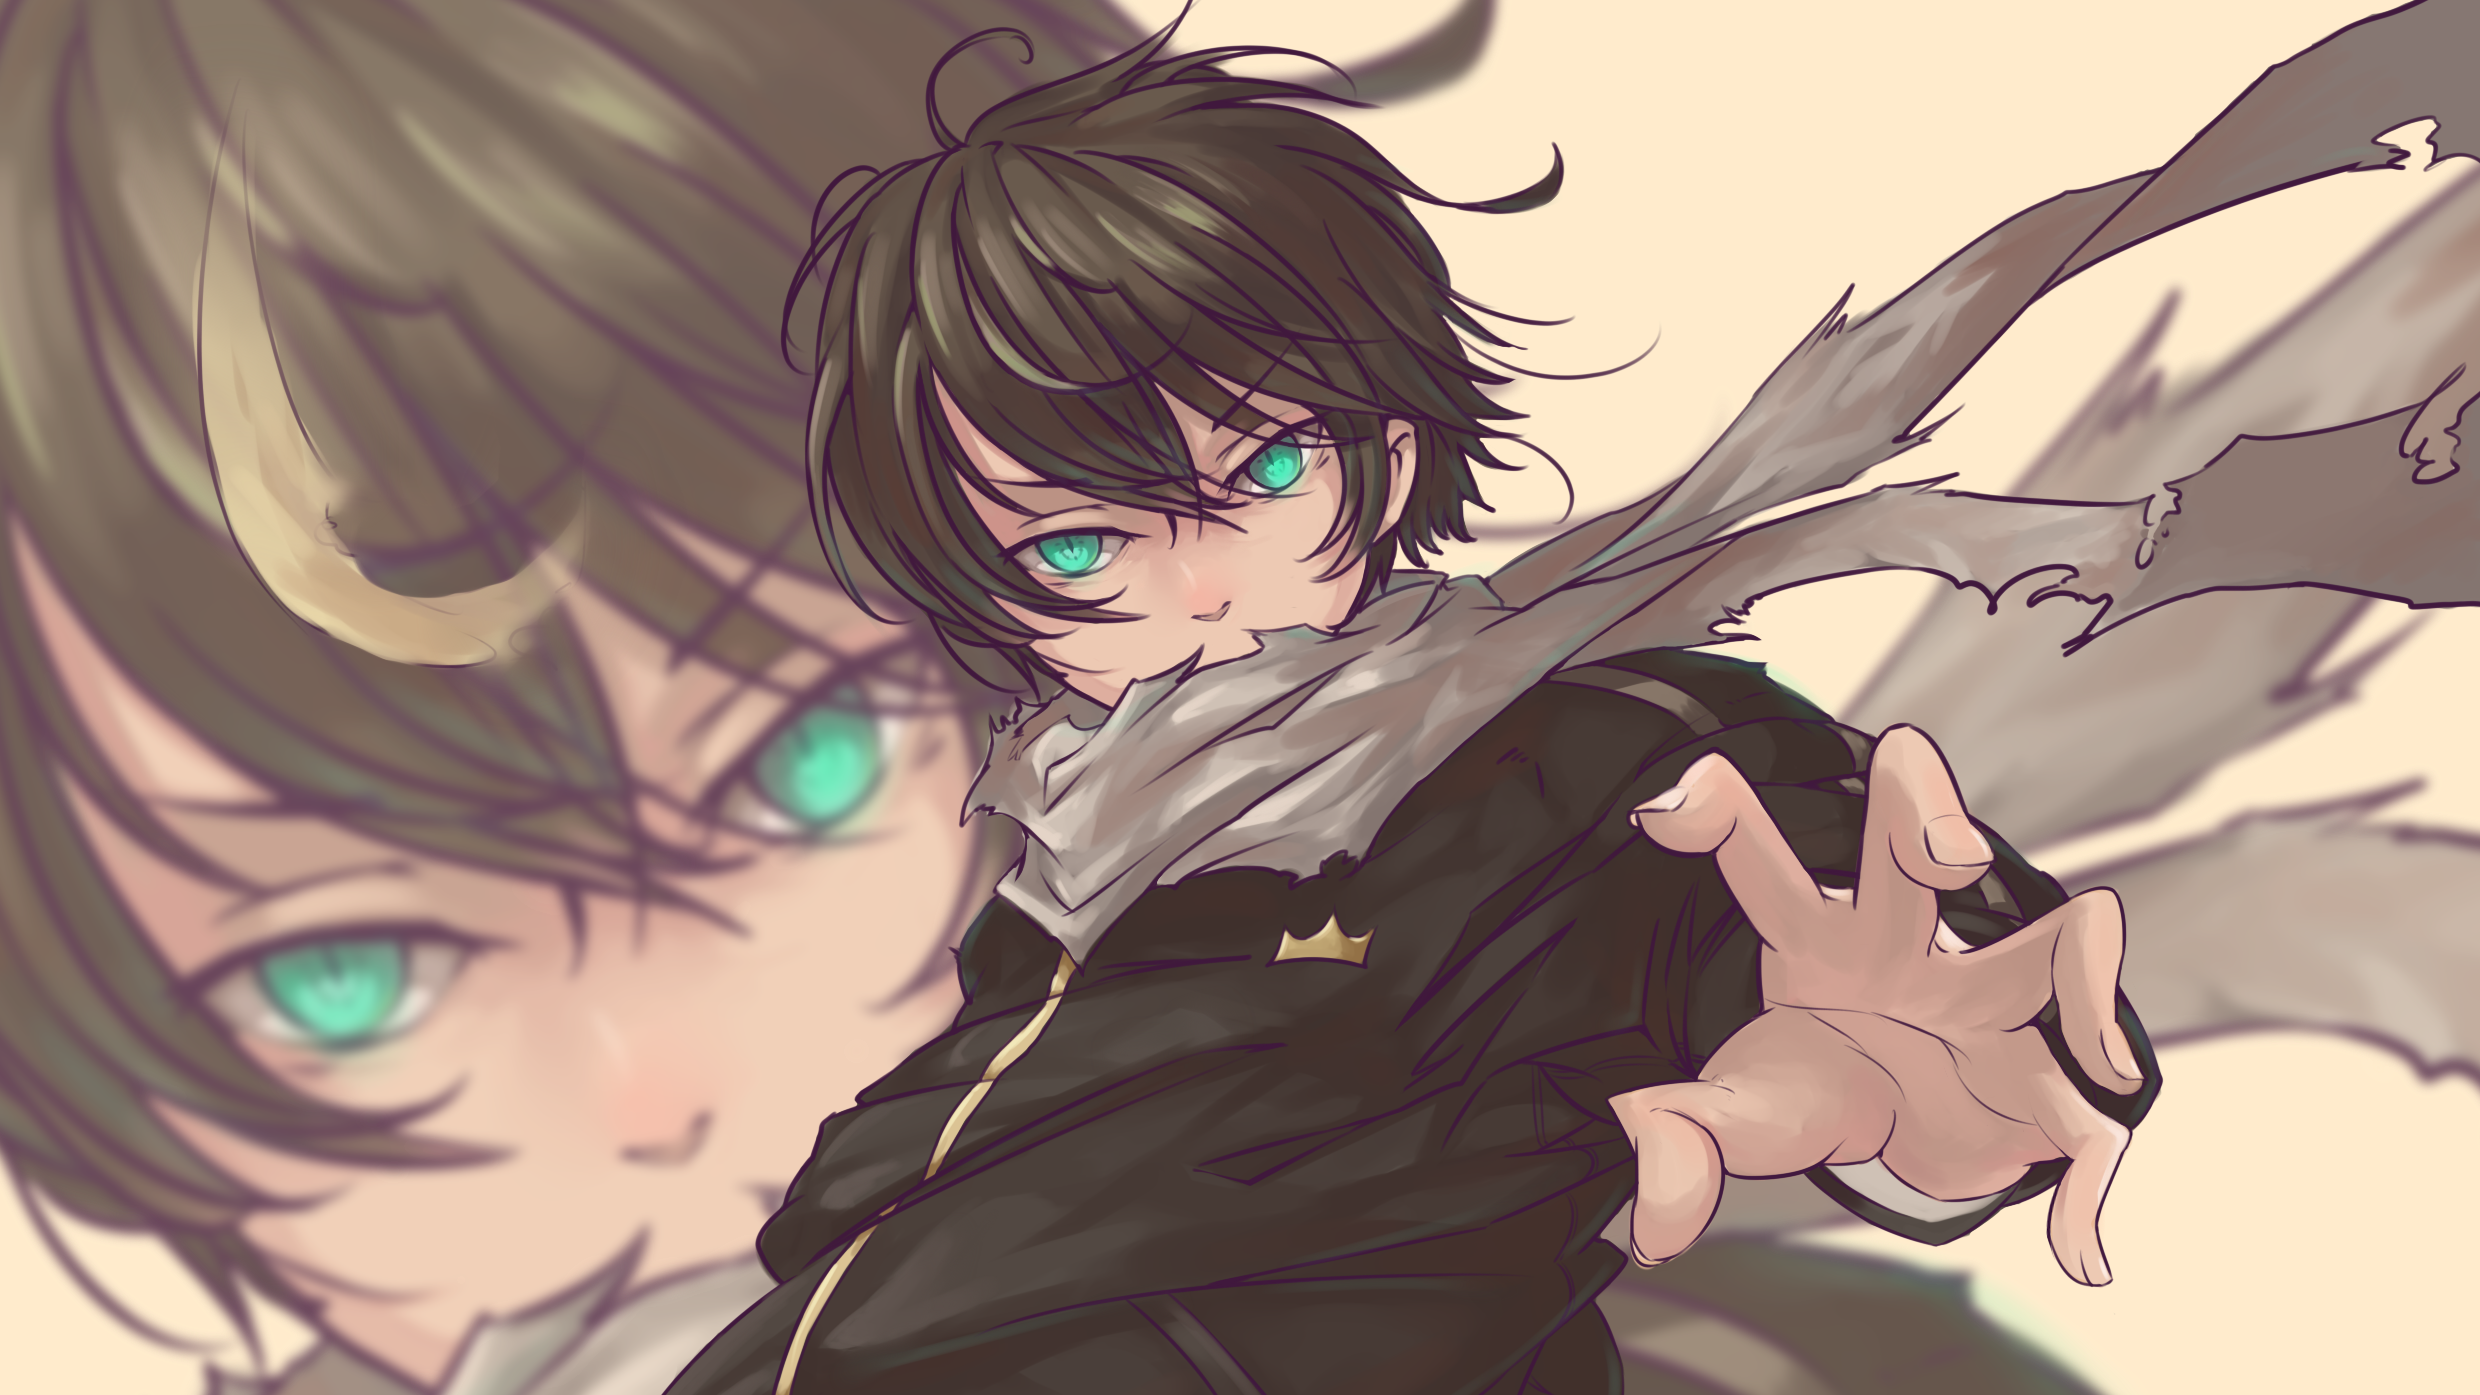 Noragami Full HD Wallpaper and Background | 2185x1229 | ID:548273